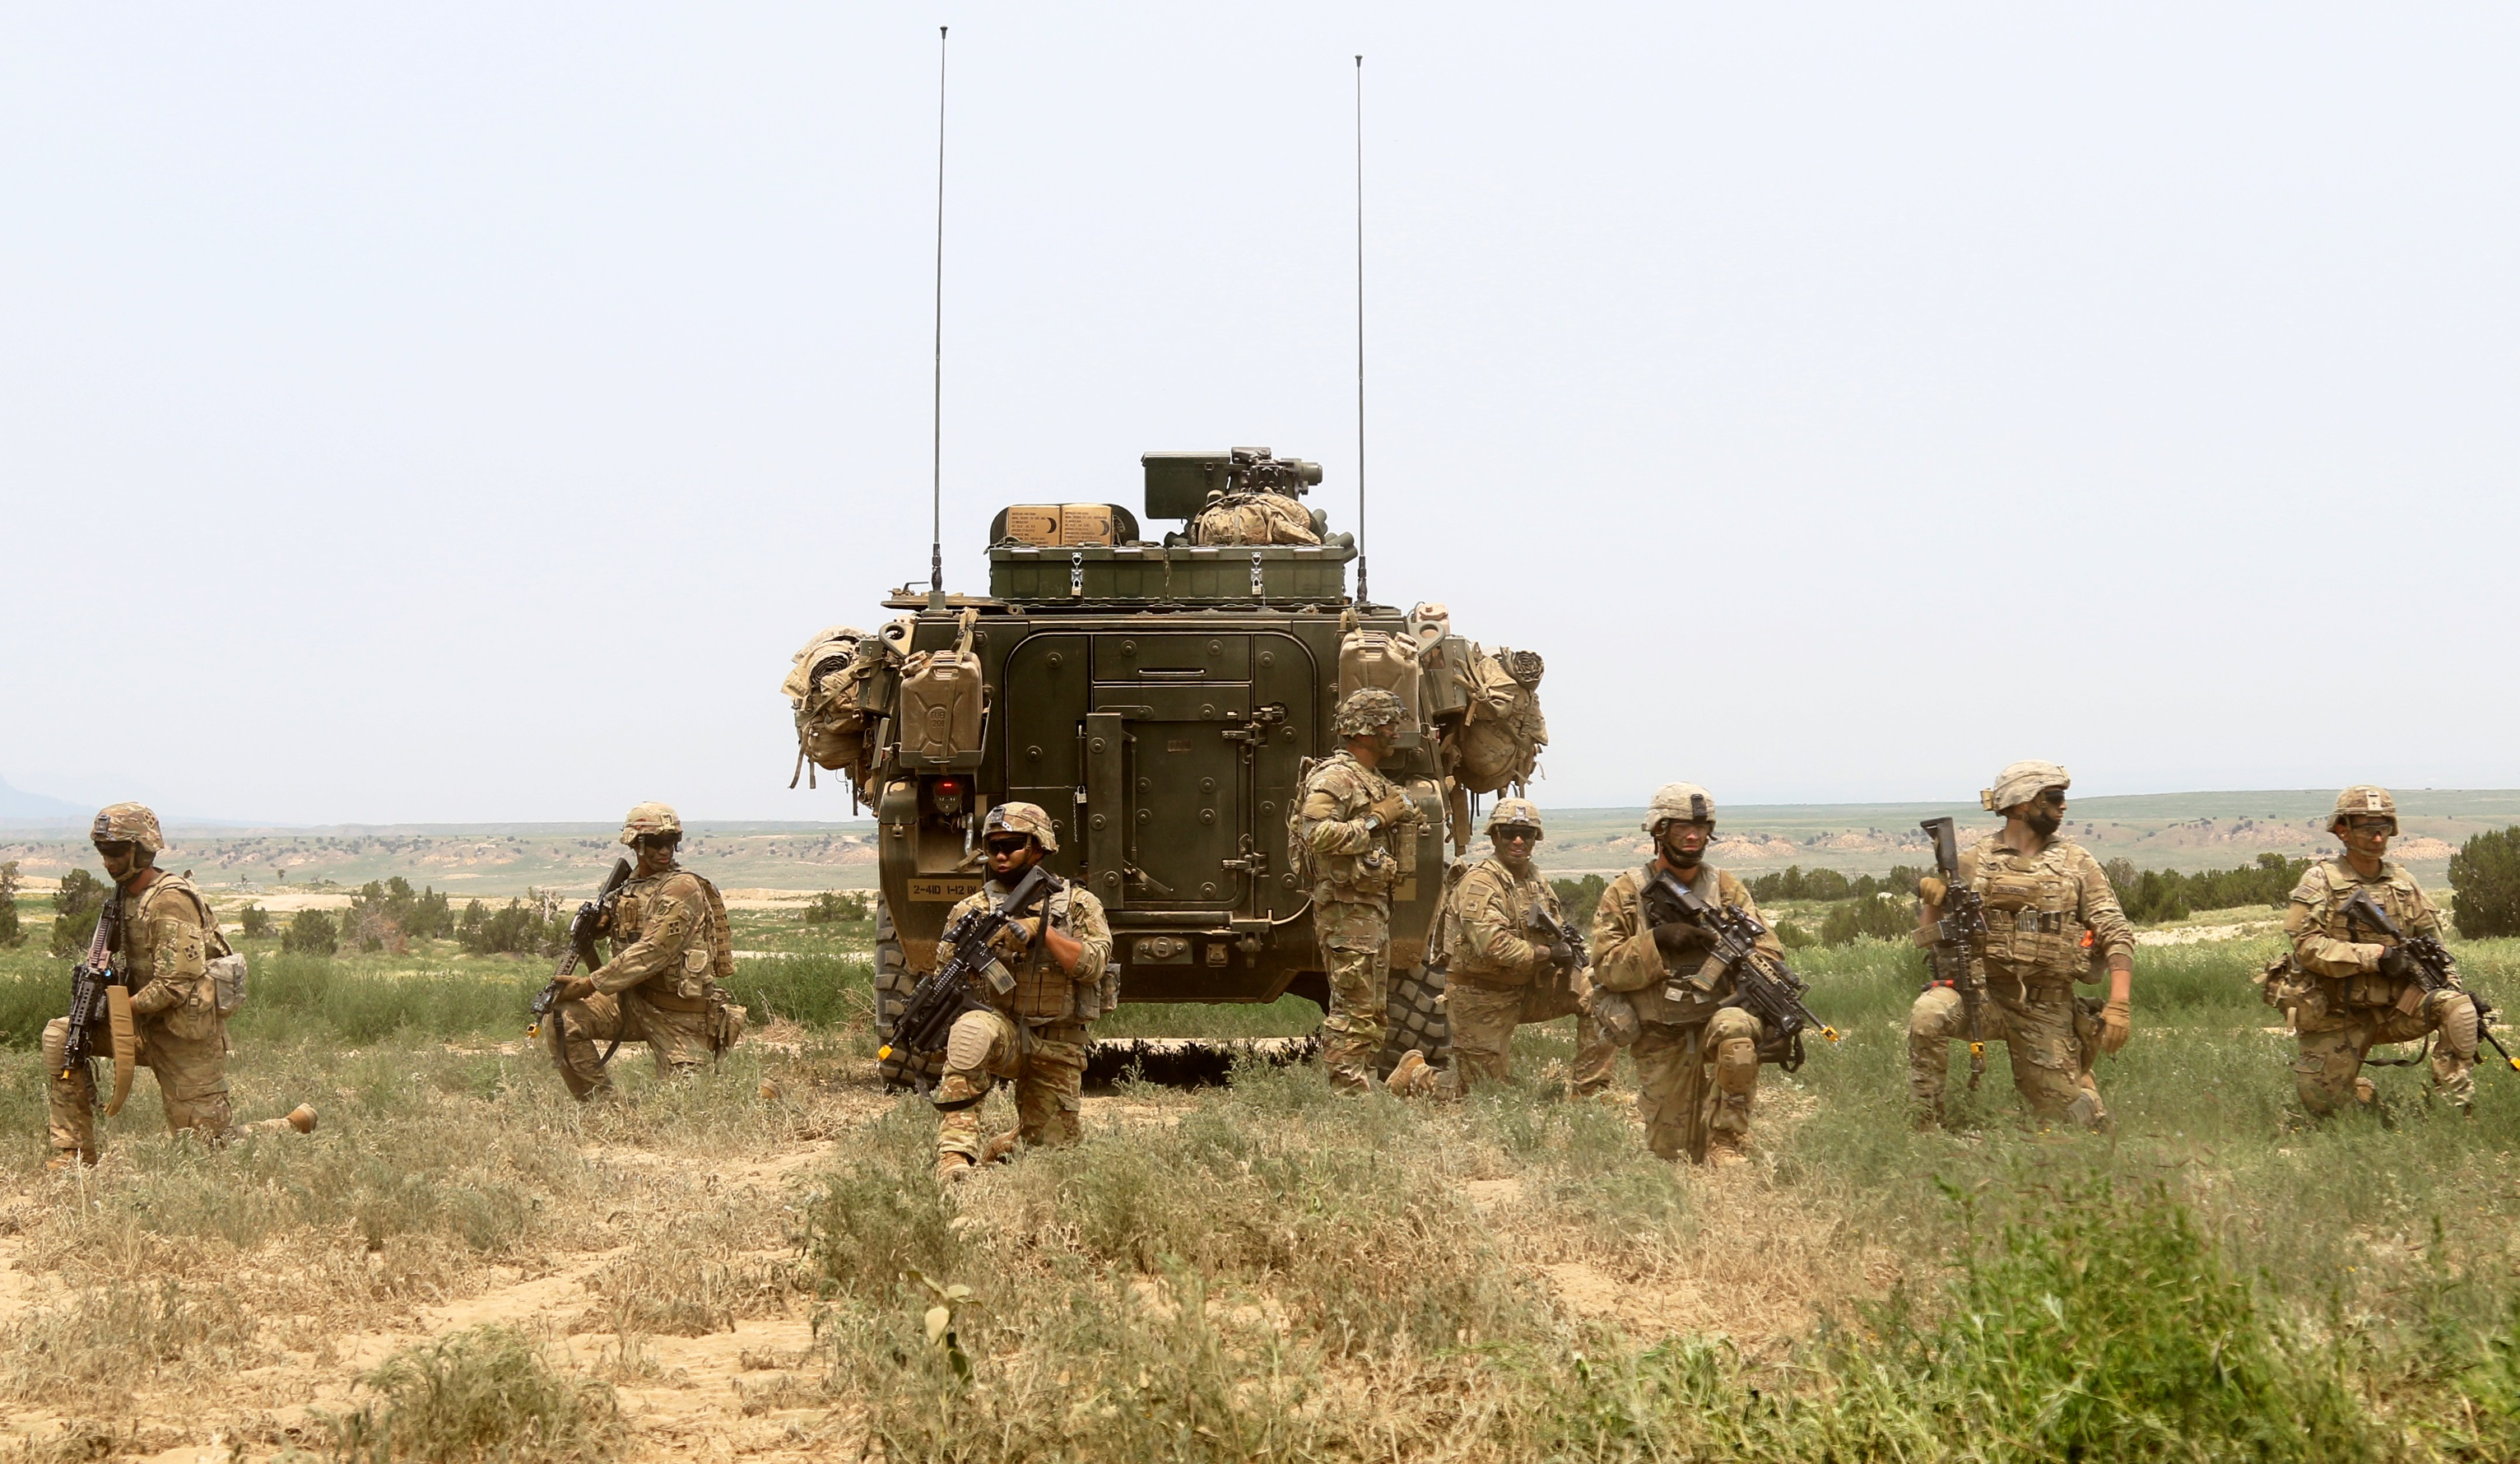 Soldiers with 1st Battalion, 12th Infantry Regiment, 2nd Stryker Brigade Combat Team, 4th Infantry Division, pull security during a platoon live-fire exercise July 12 at Fort Carson, Colo. The Warhorse Brigade's training aligns with its upcoming training rotation to Fort Irwin, Calif. (Maj. Jason Elmore/Army)